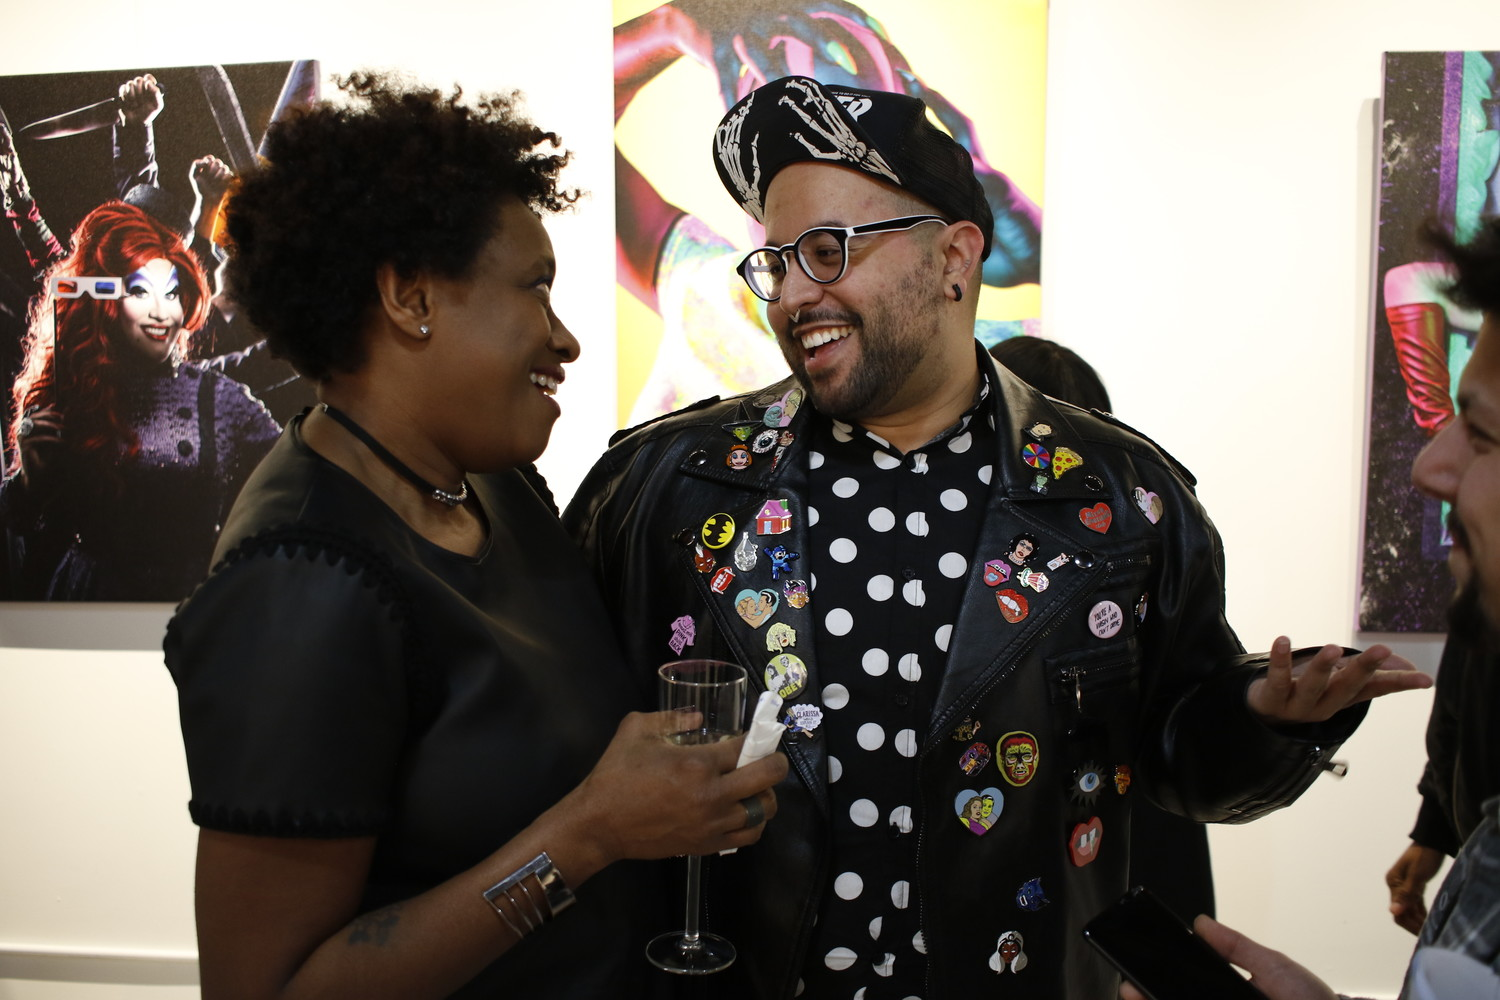 Freeport native David Ayllon, right, held his first ever gallery opening at POP in Baldwin which is owned by his friend Dawn Maison, left. The drag portraits, his first ever photography project, were a huge hit with the attendees.